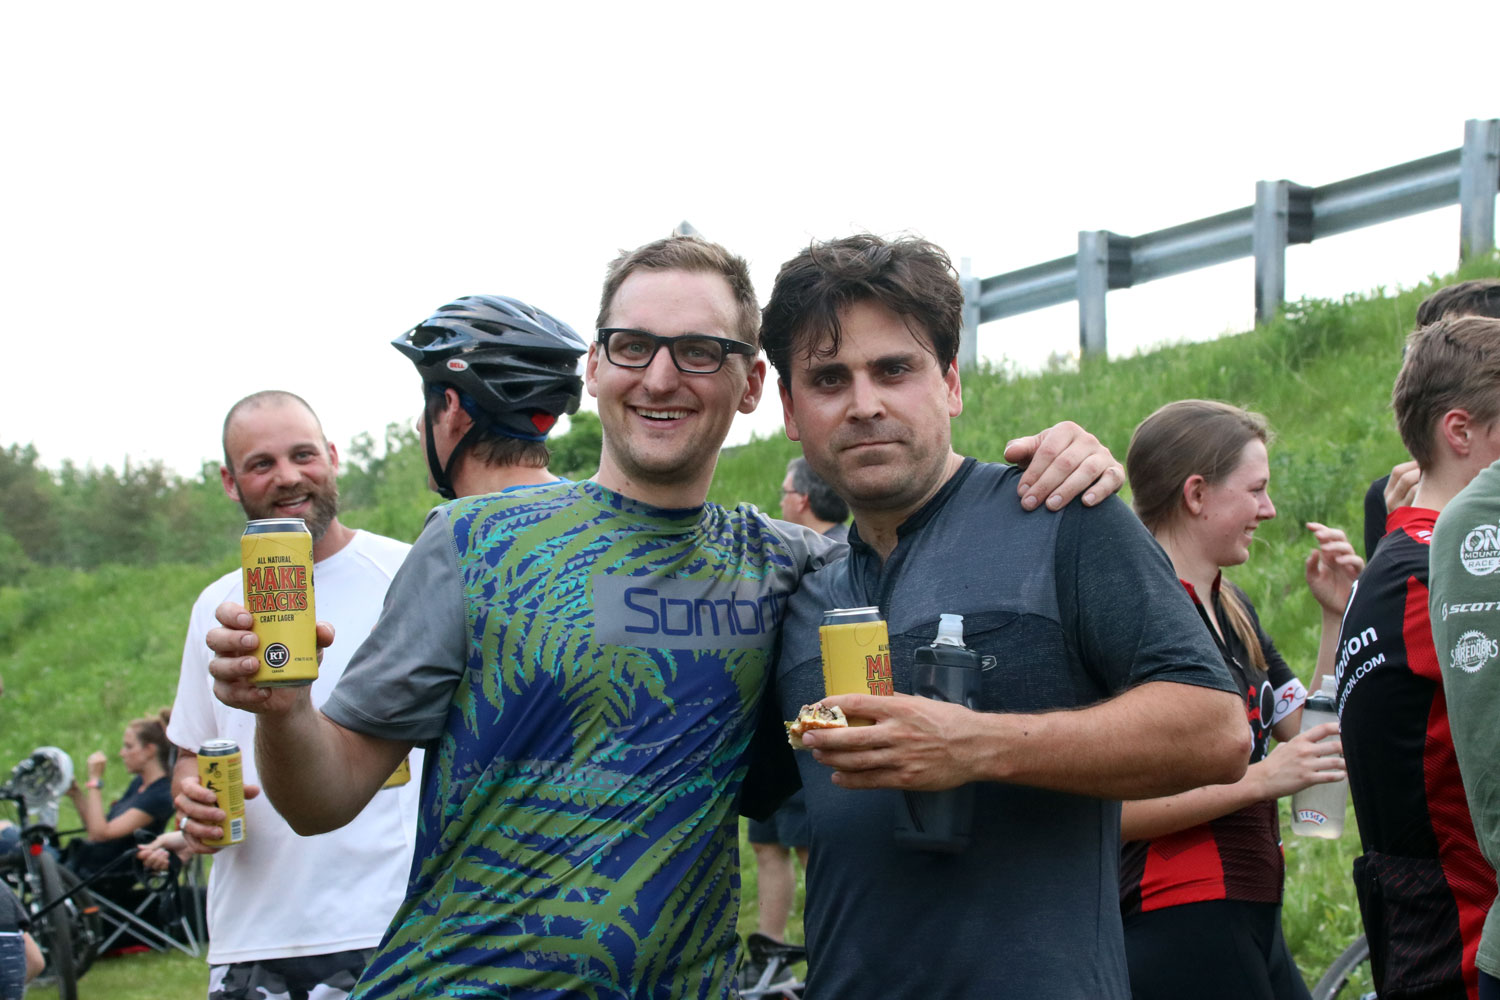 Dave Van Schie (left) - bridge builder extraordinaire - and Paul Boken enjoy a cold brew and burger after an epic race. Treats never taste better than when they are hard-earned! Thanks to Red Thread Brewing Co. for supporting our event!